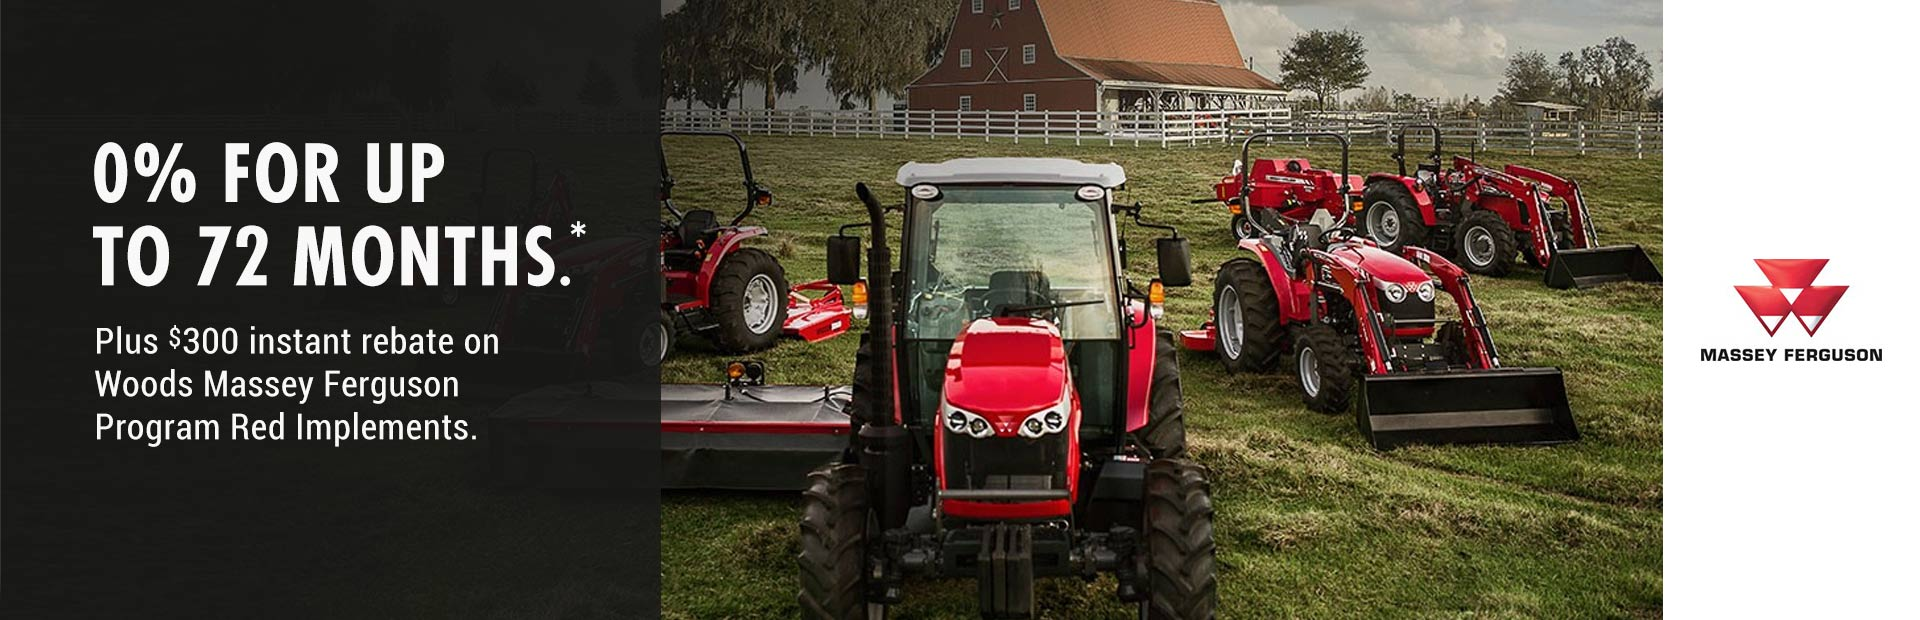 Massey Ferguson: 0% for up to 72 months